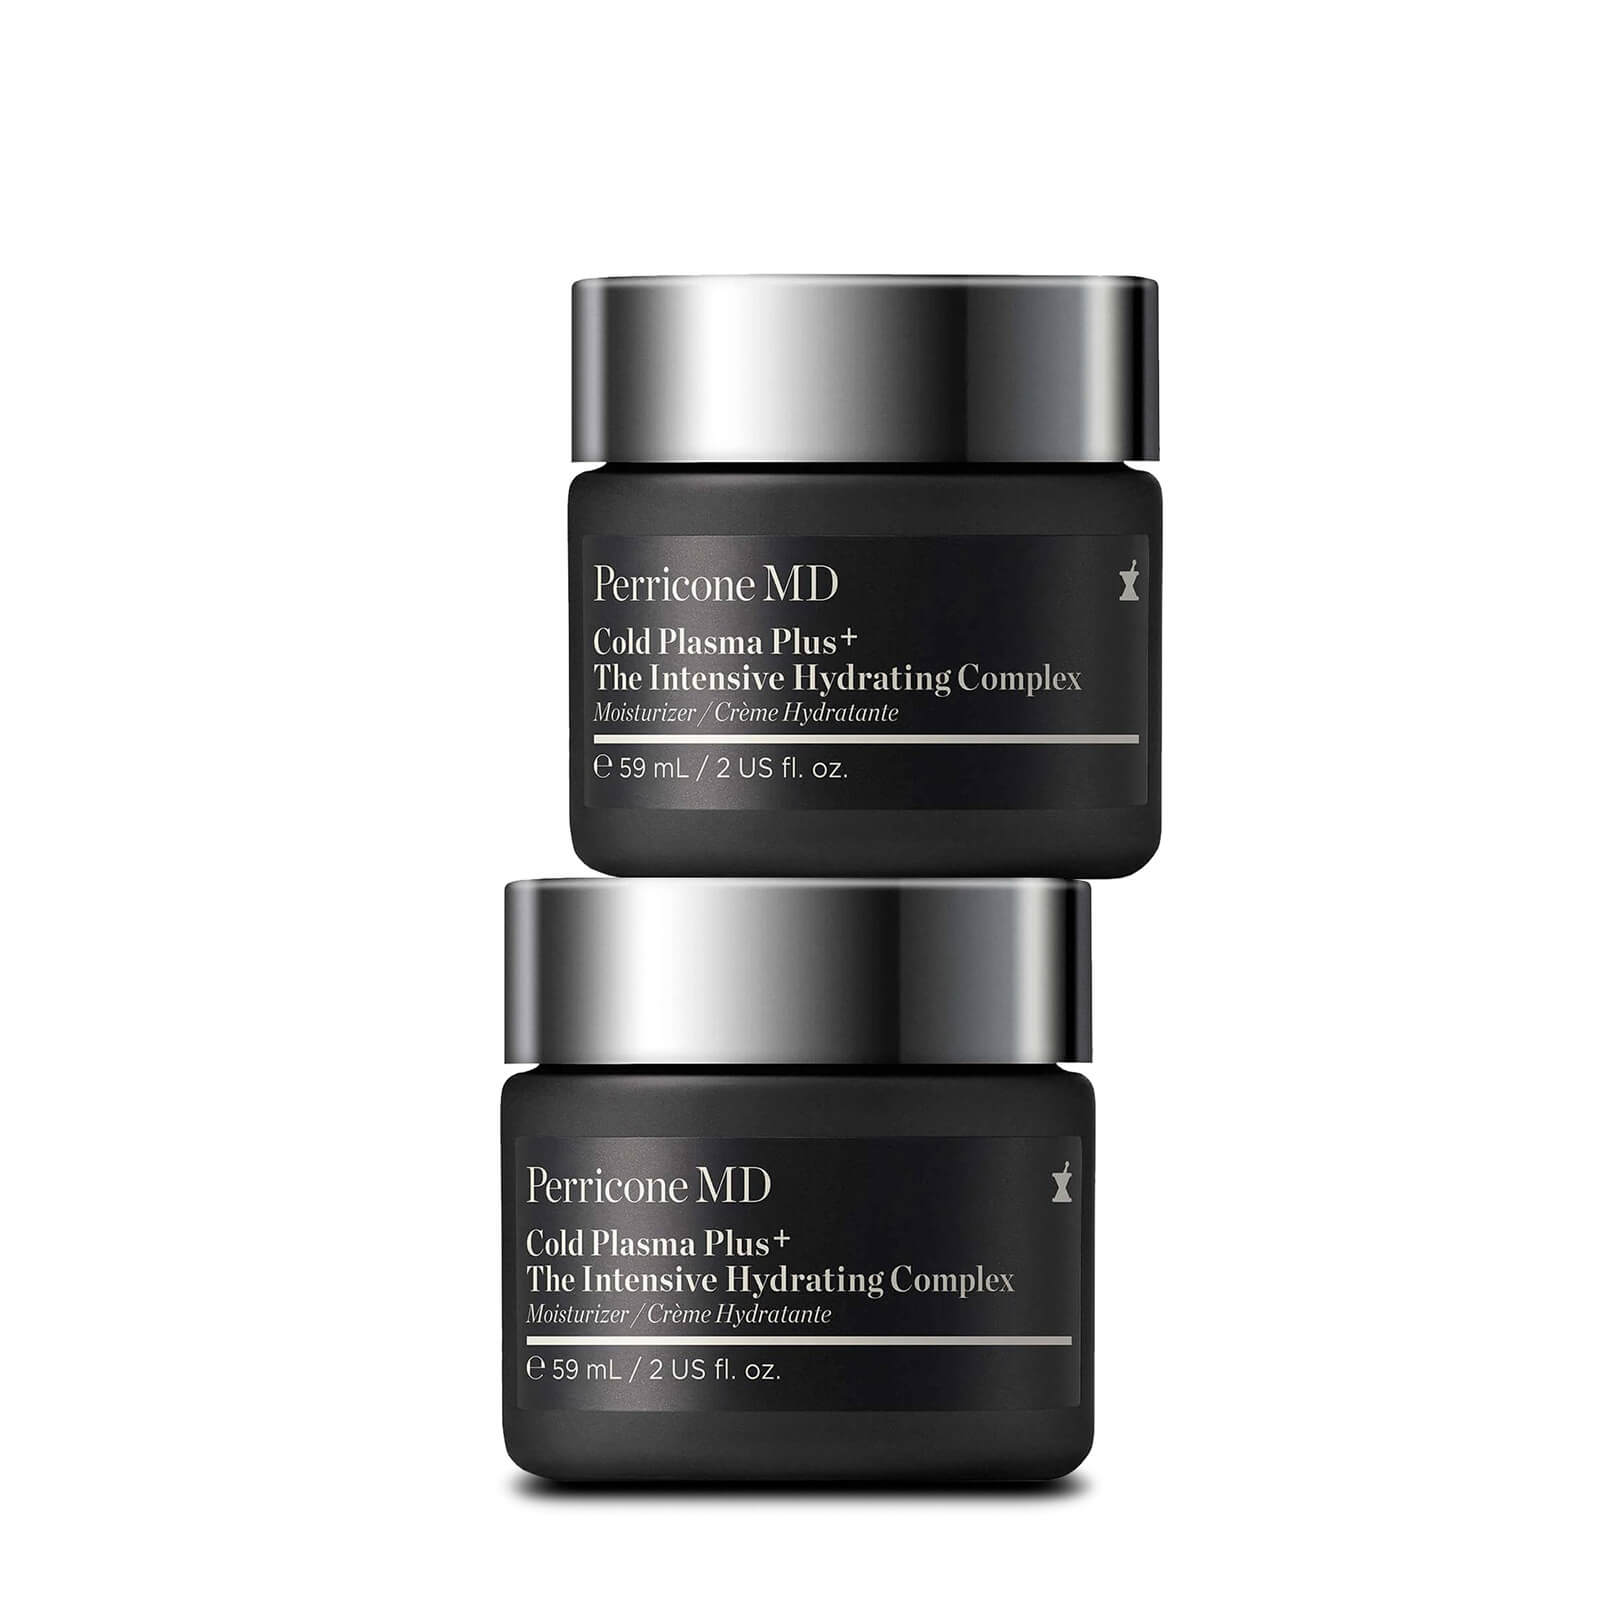 Cold Plasma Plus+ The Intensive Hydrating Complex Duo